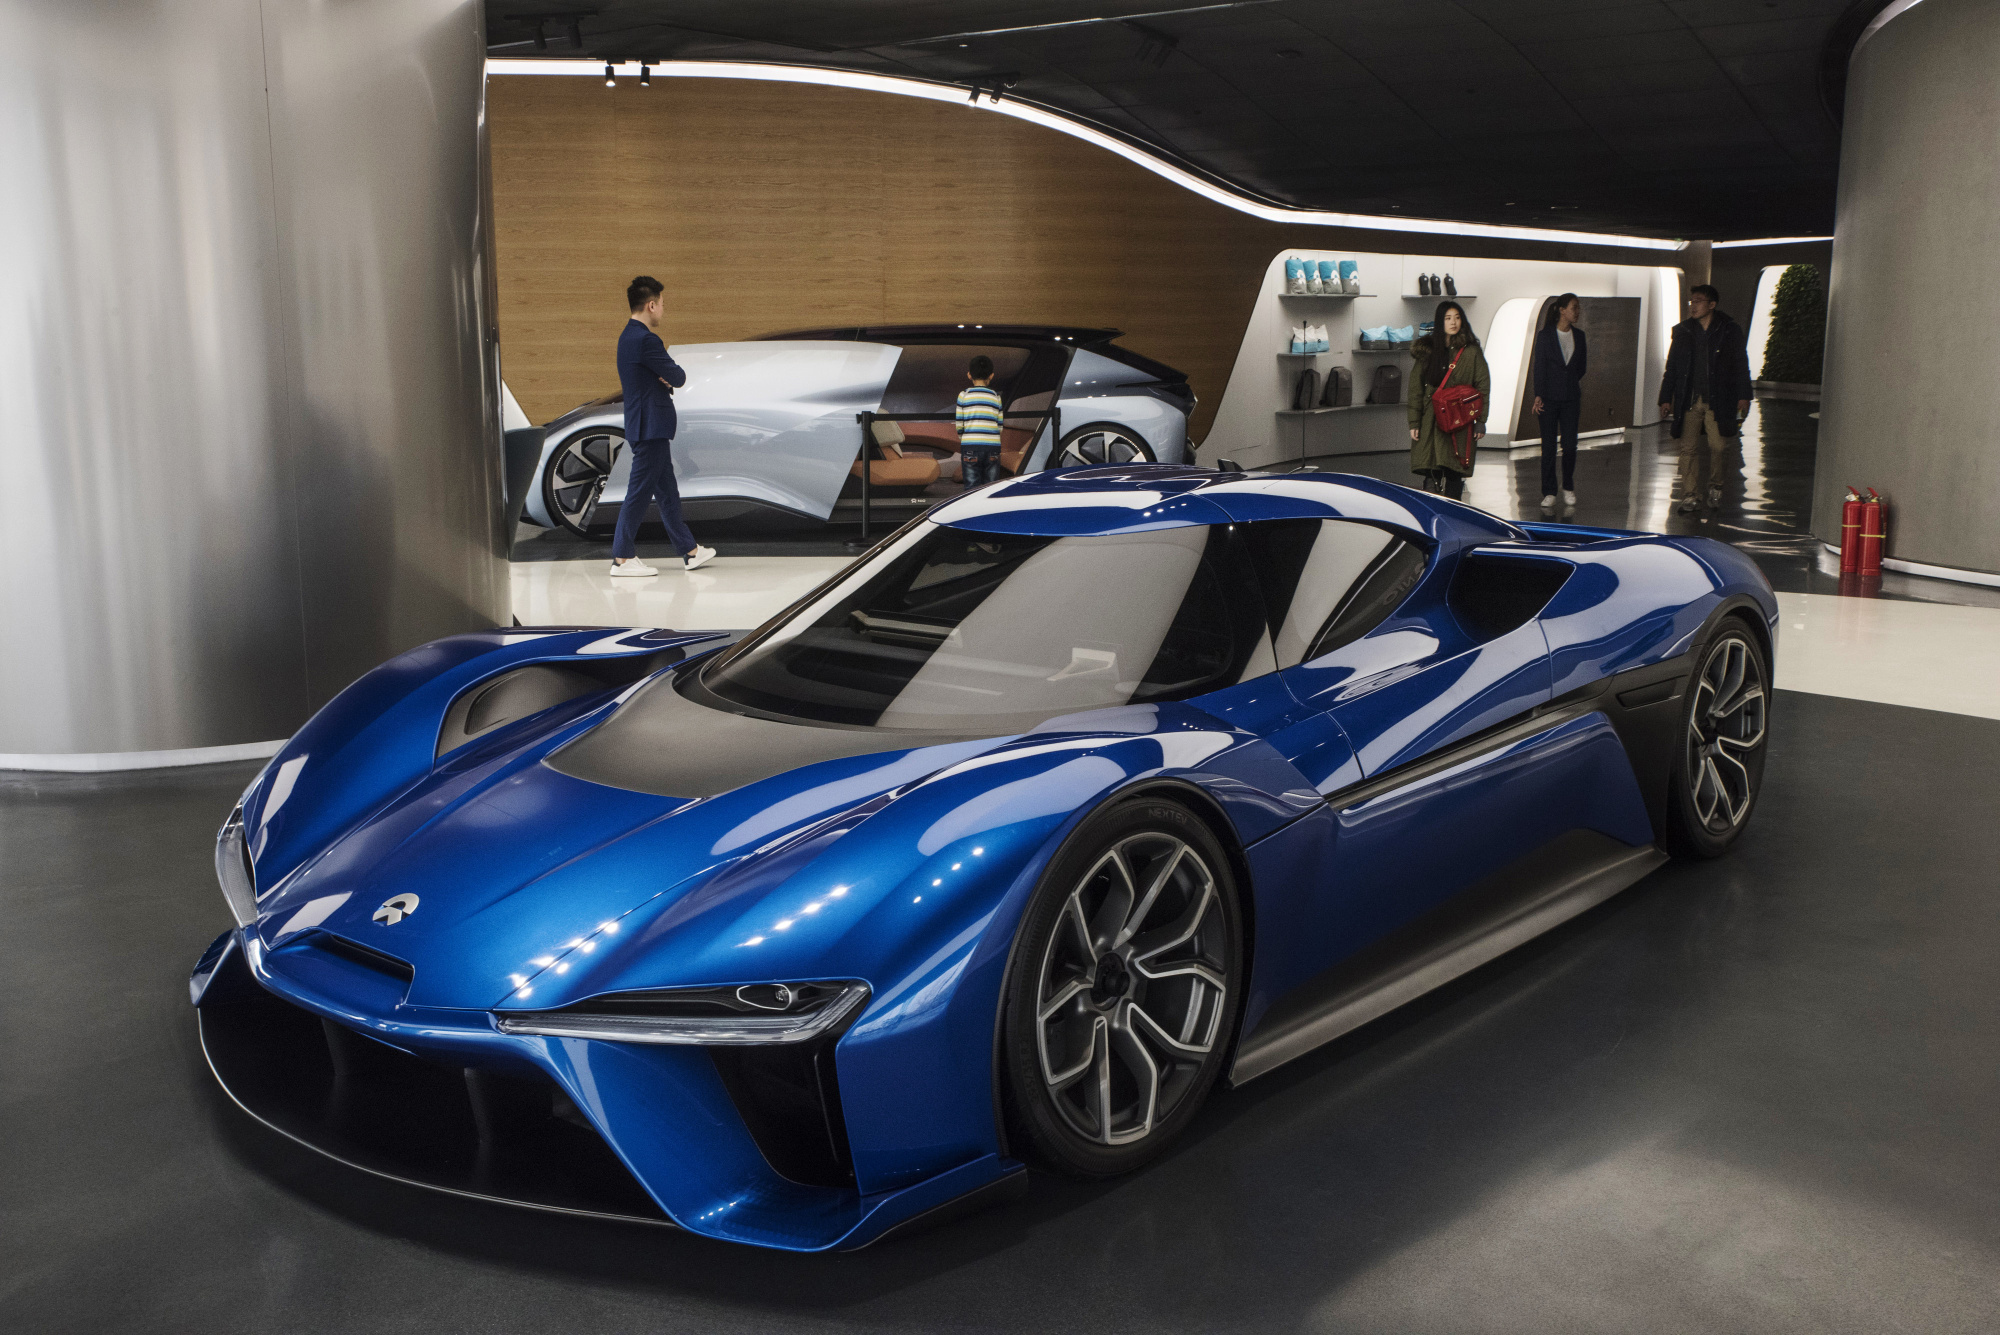 china's nio has the electric-car look, but it's no tesla - bloomberg